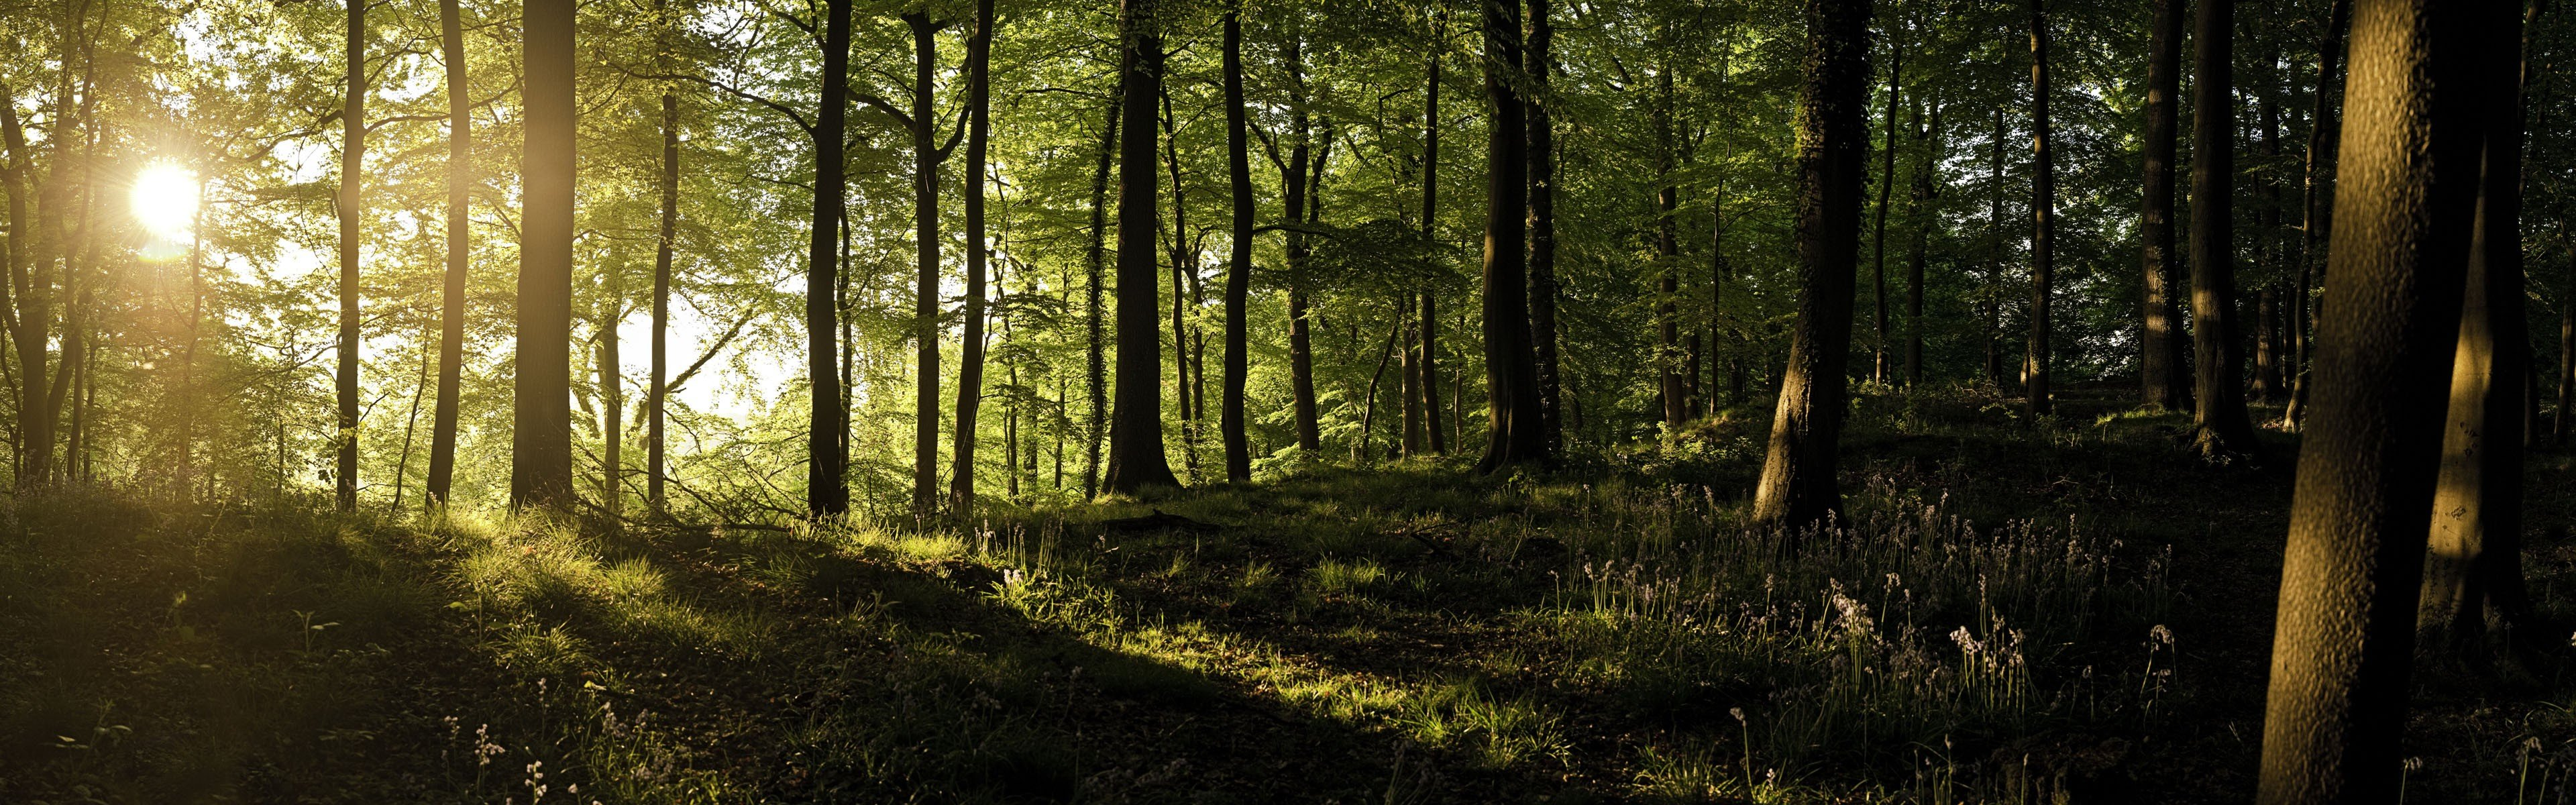 England forests sunlight United Kingdom panorama wallpaper background 3840x1200